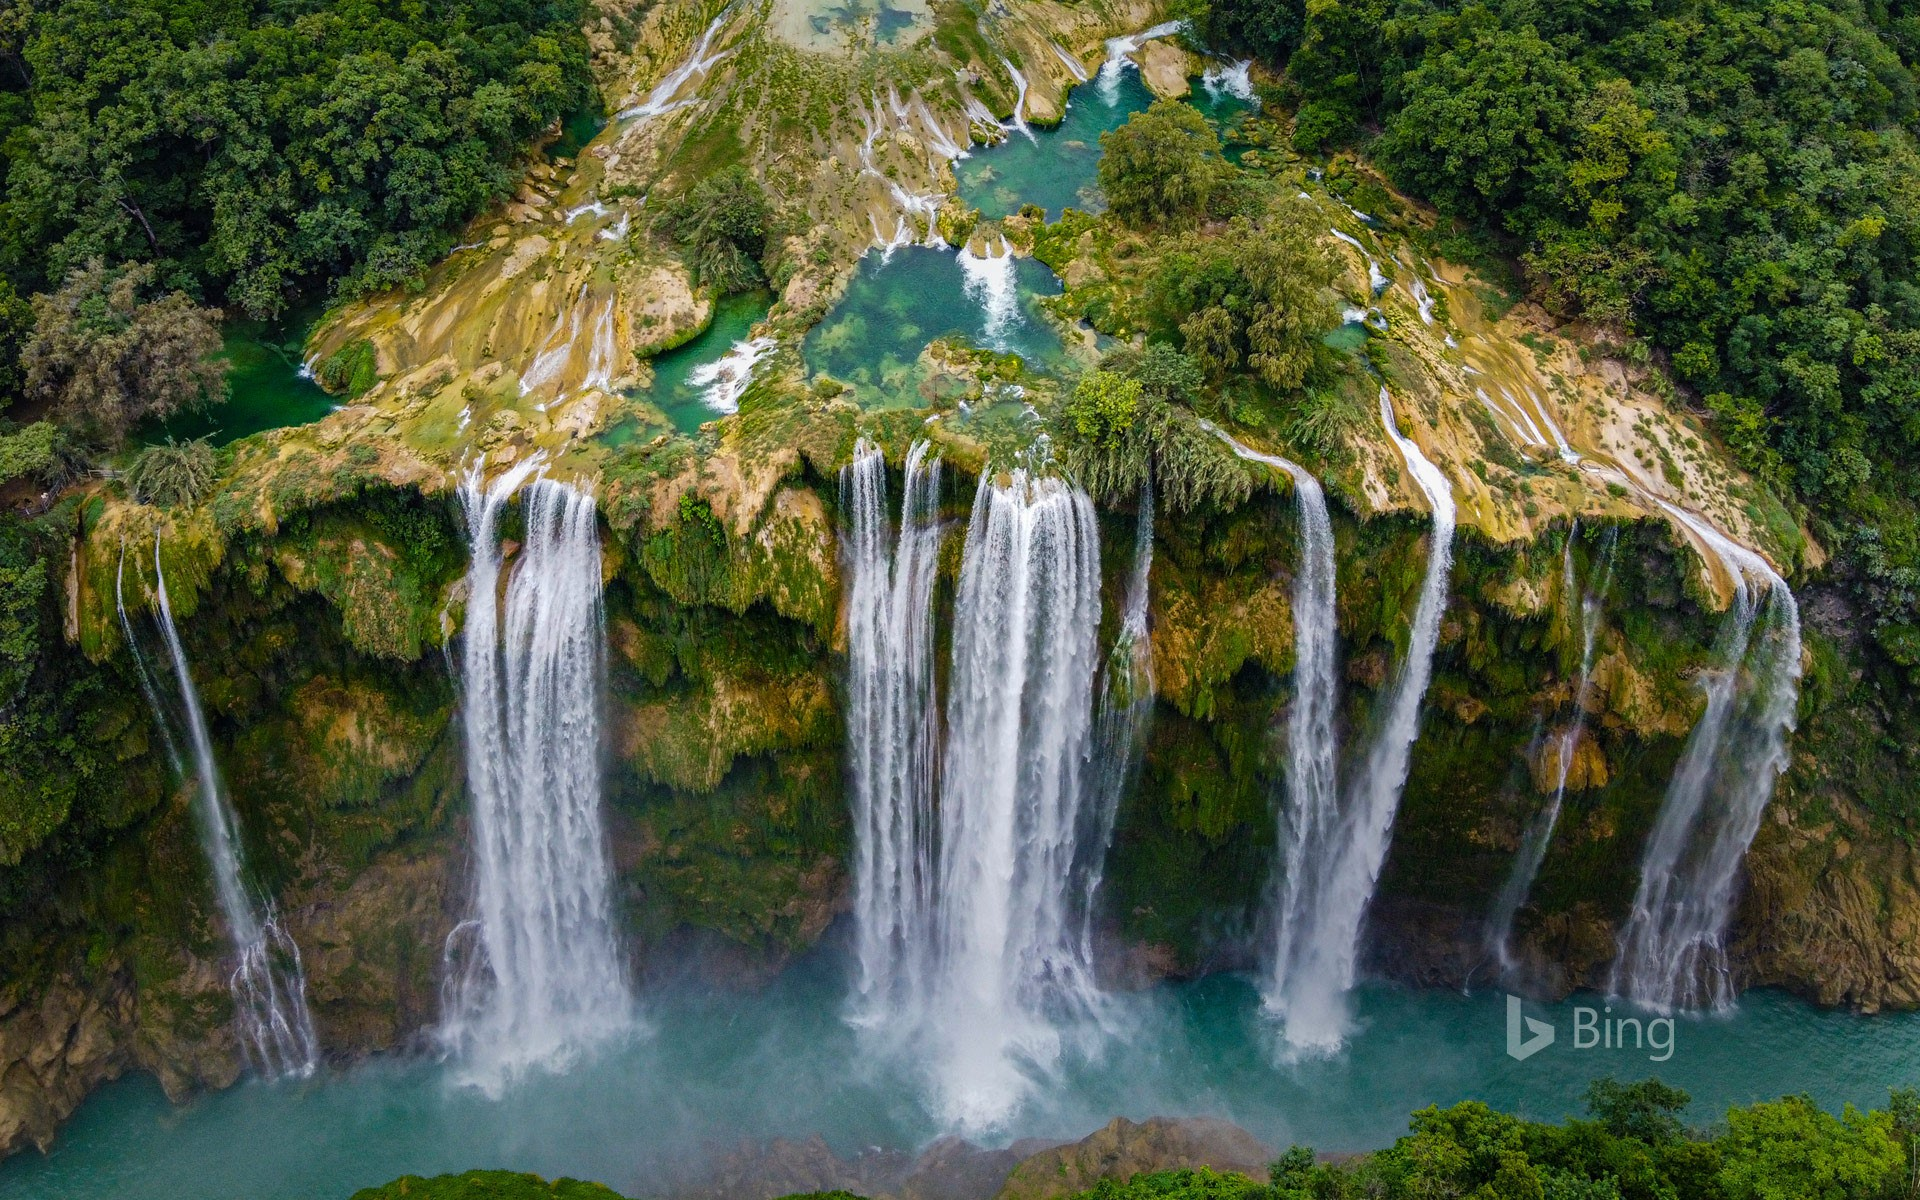 Tamul waterfall in the state of San Luis Potosí, Mexico